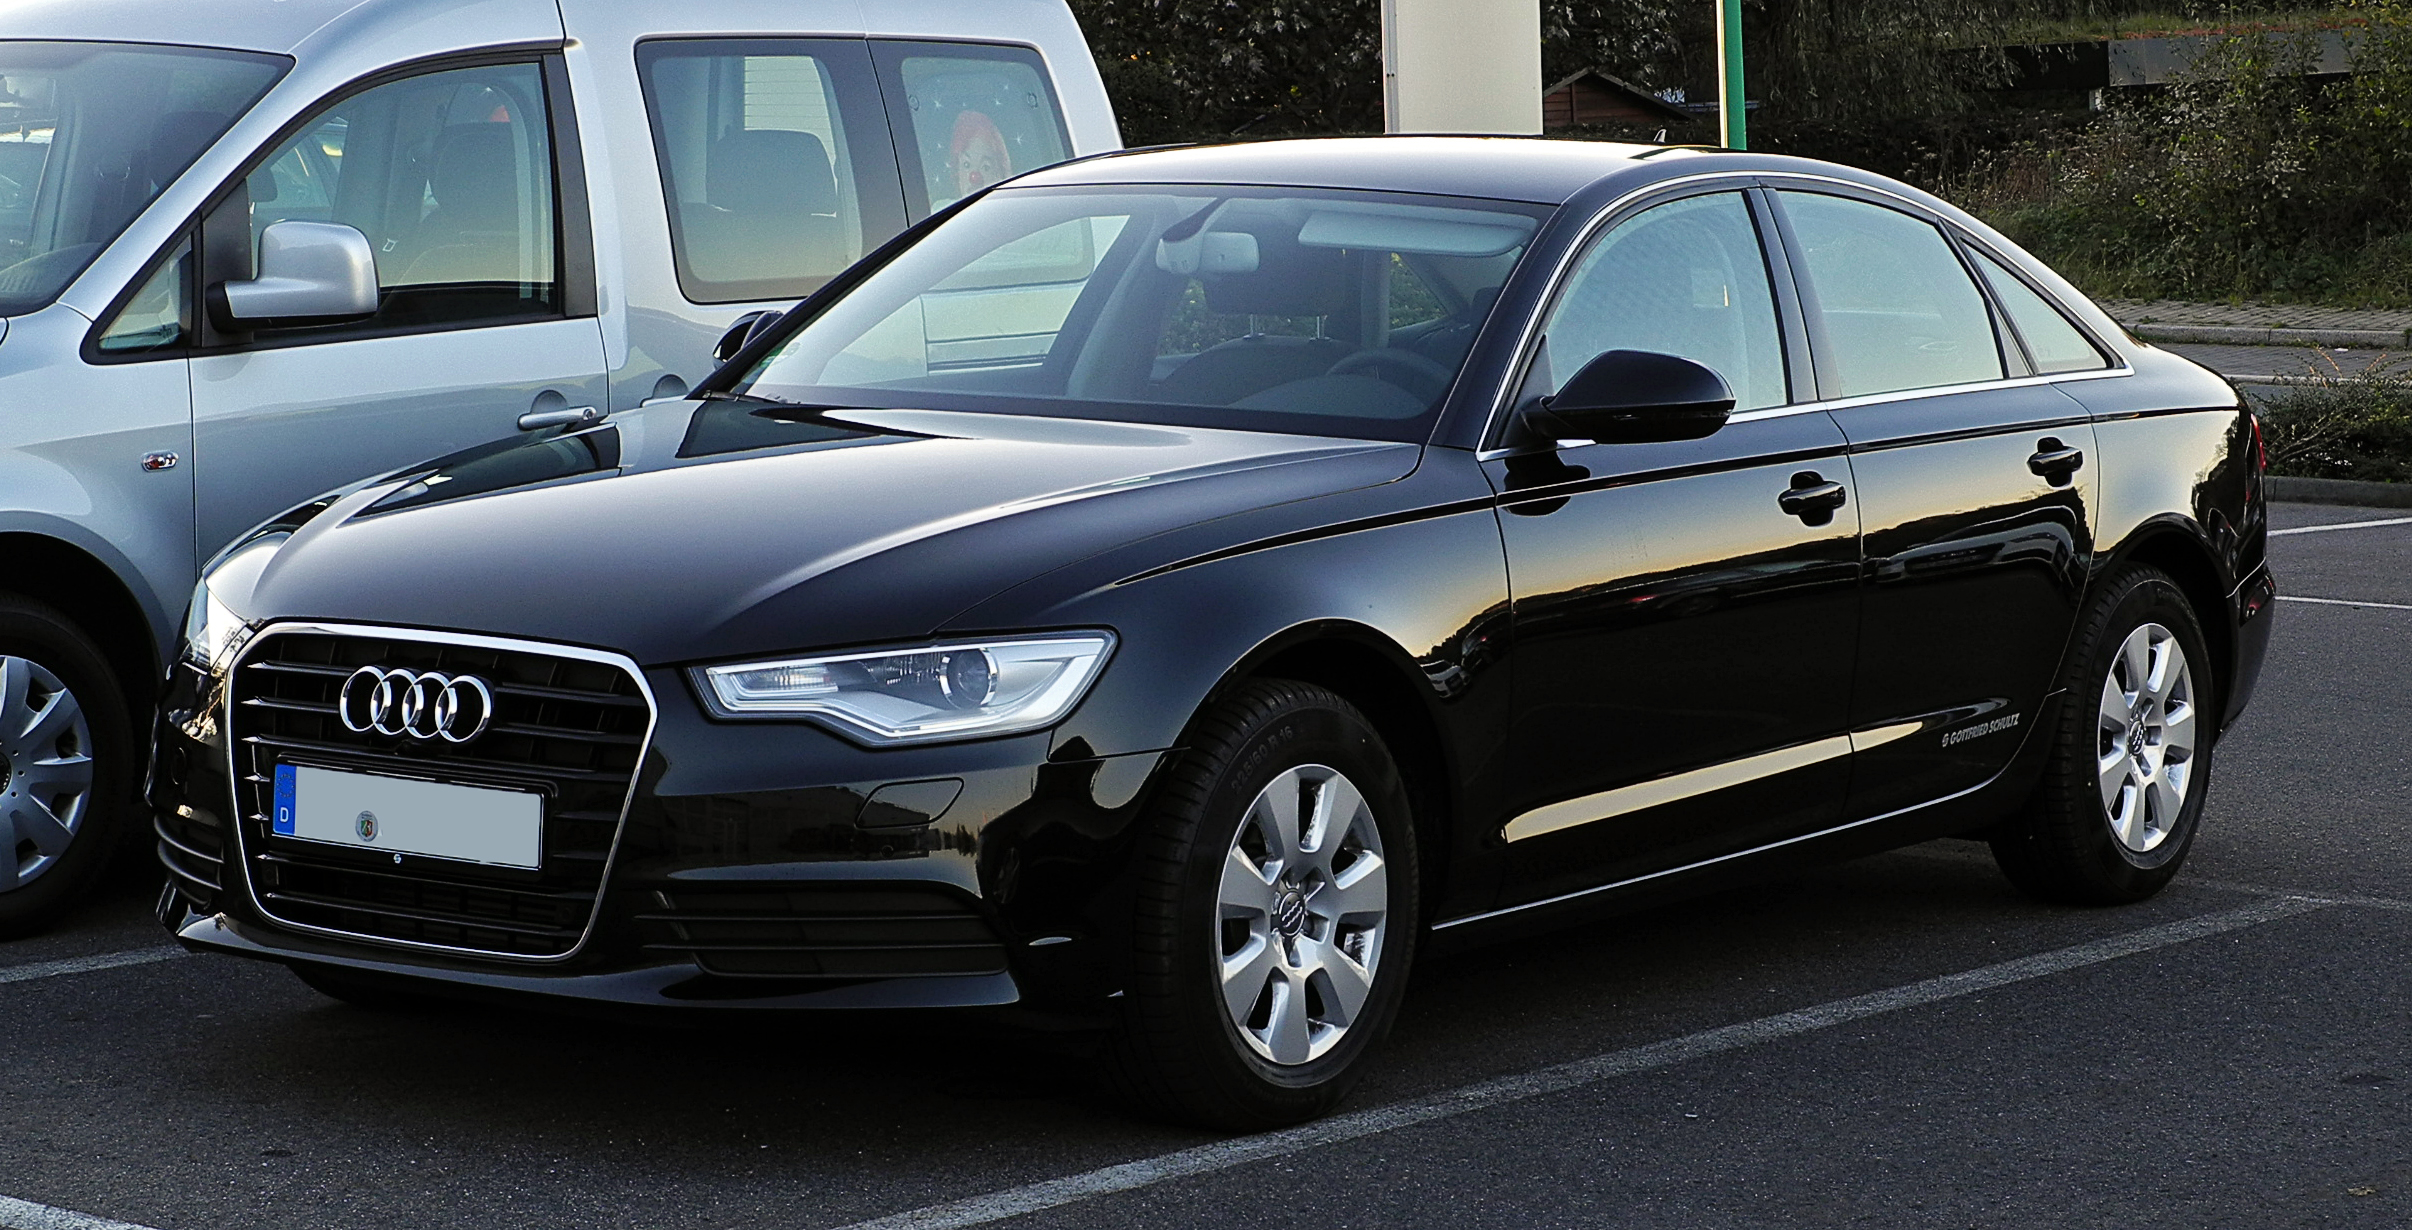 file audi a6 2 0 tdi c7 frontansicht 15 oktober 2011 wikimedia commons. Black Bedroom Furniture Sets. Home Design Ideas